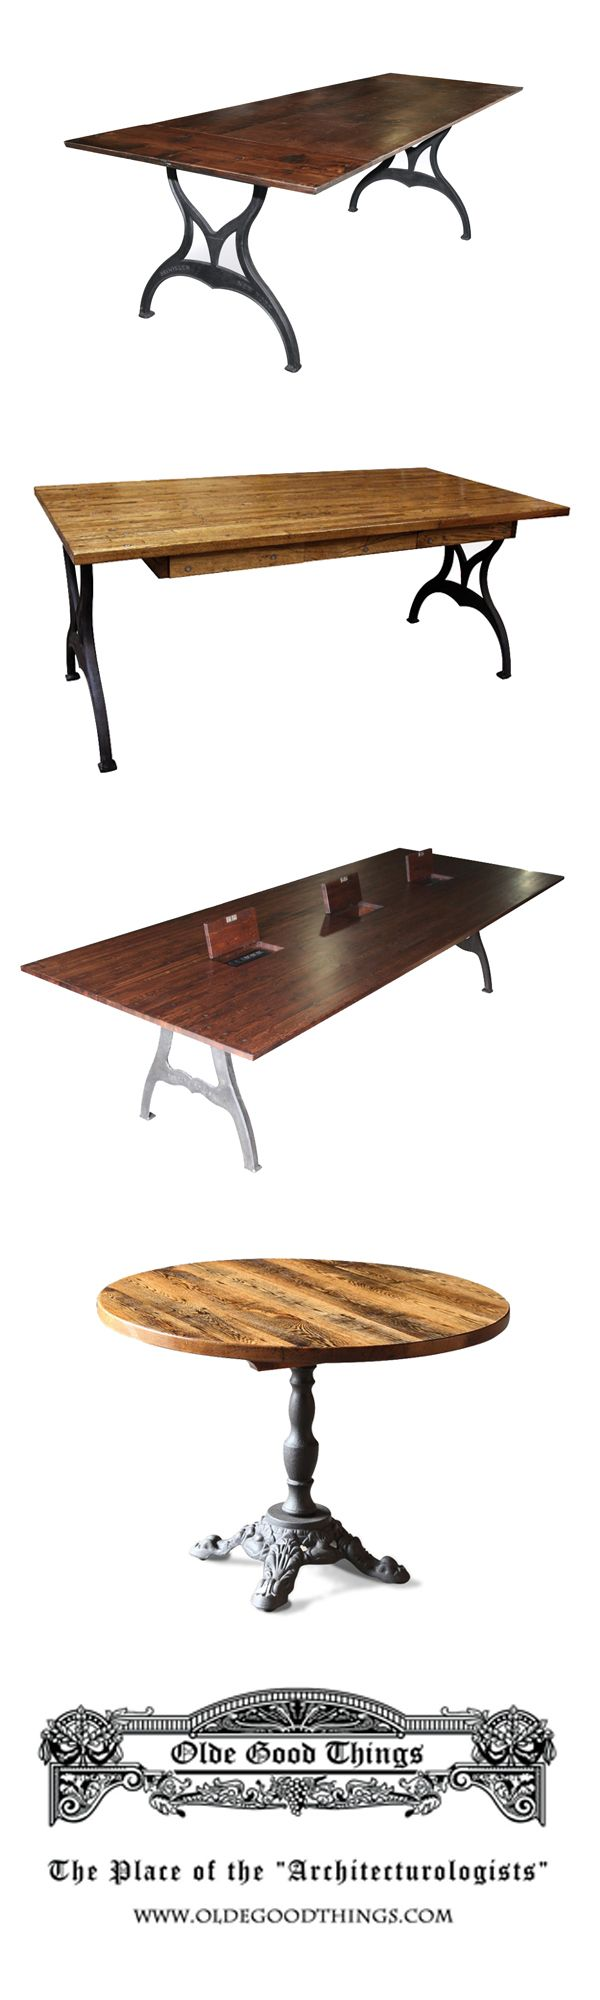 10 Latest Sustainable Custom Table Ideas Customize Using Extensions,  Drawers, Outlet Cut Outs,